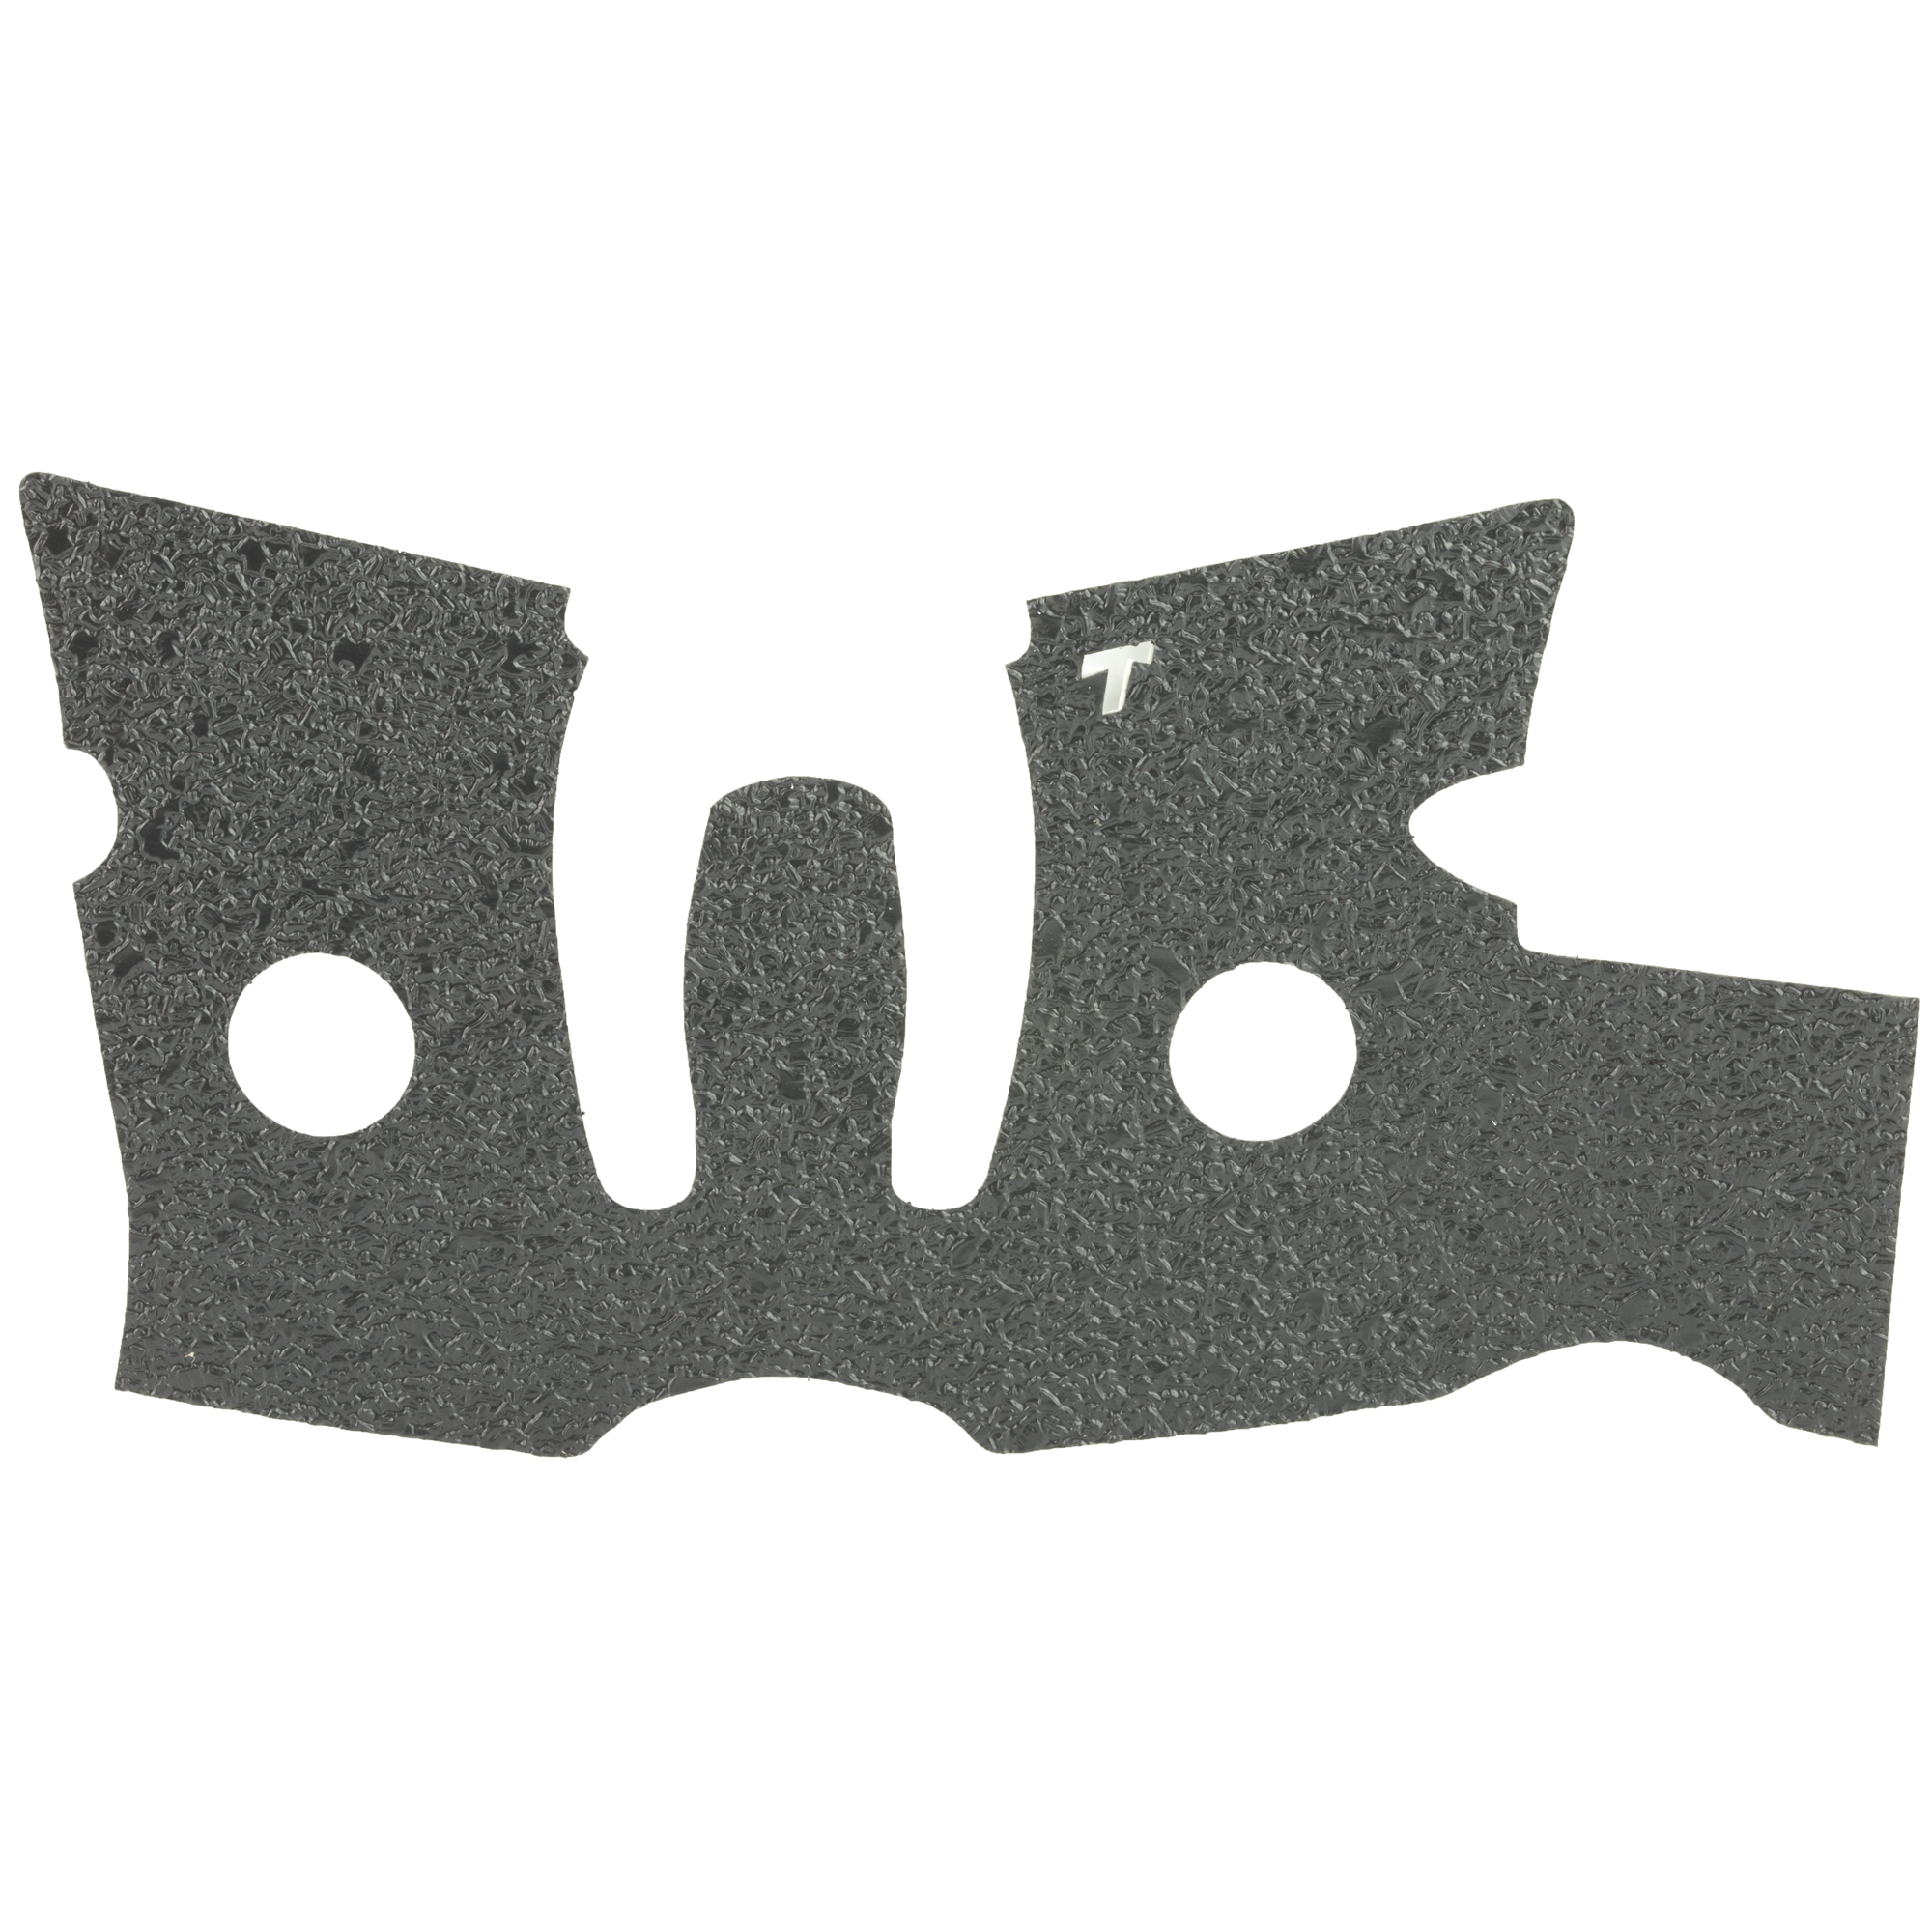 """TALON Grips for Ruger LC9S and EC9S modes. This rear wrap grip is in the rubber texture and offers full side panel coverage including the thumb rest area"""" full coverage under the trigger guard"""" and high coverage on the backstrap. This grip has graphic cutouts for the Ruger emblem on each side of the firearm."""